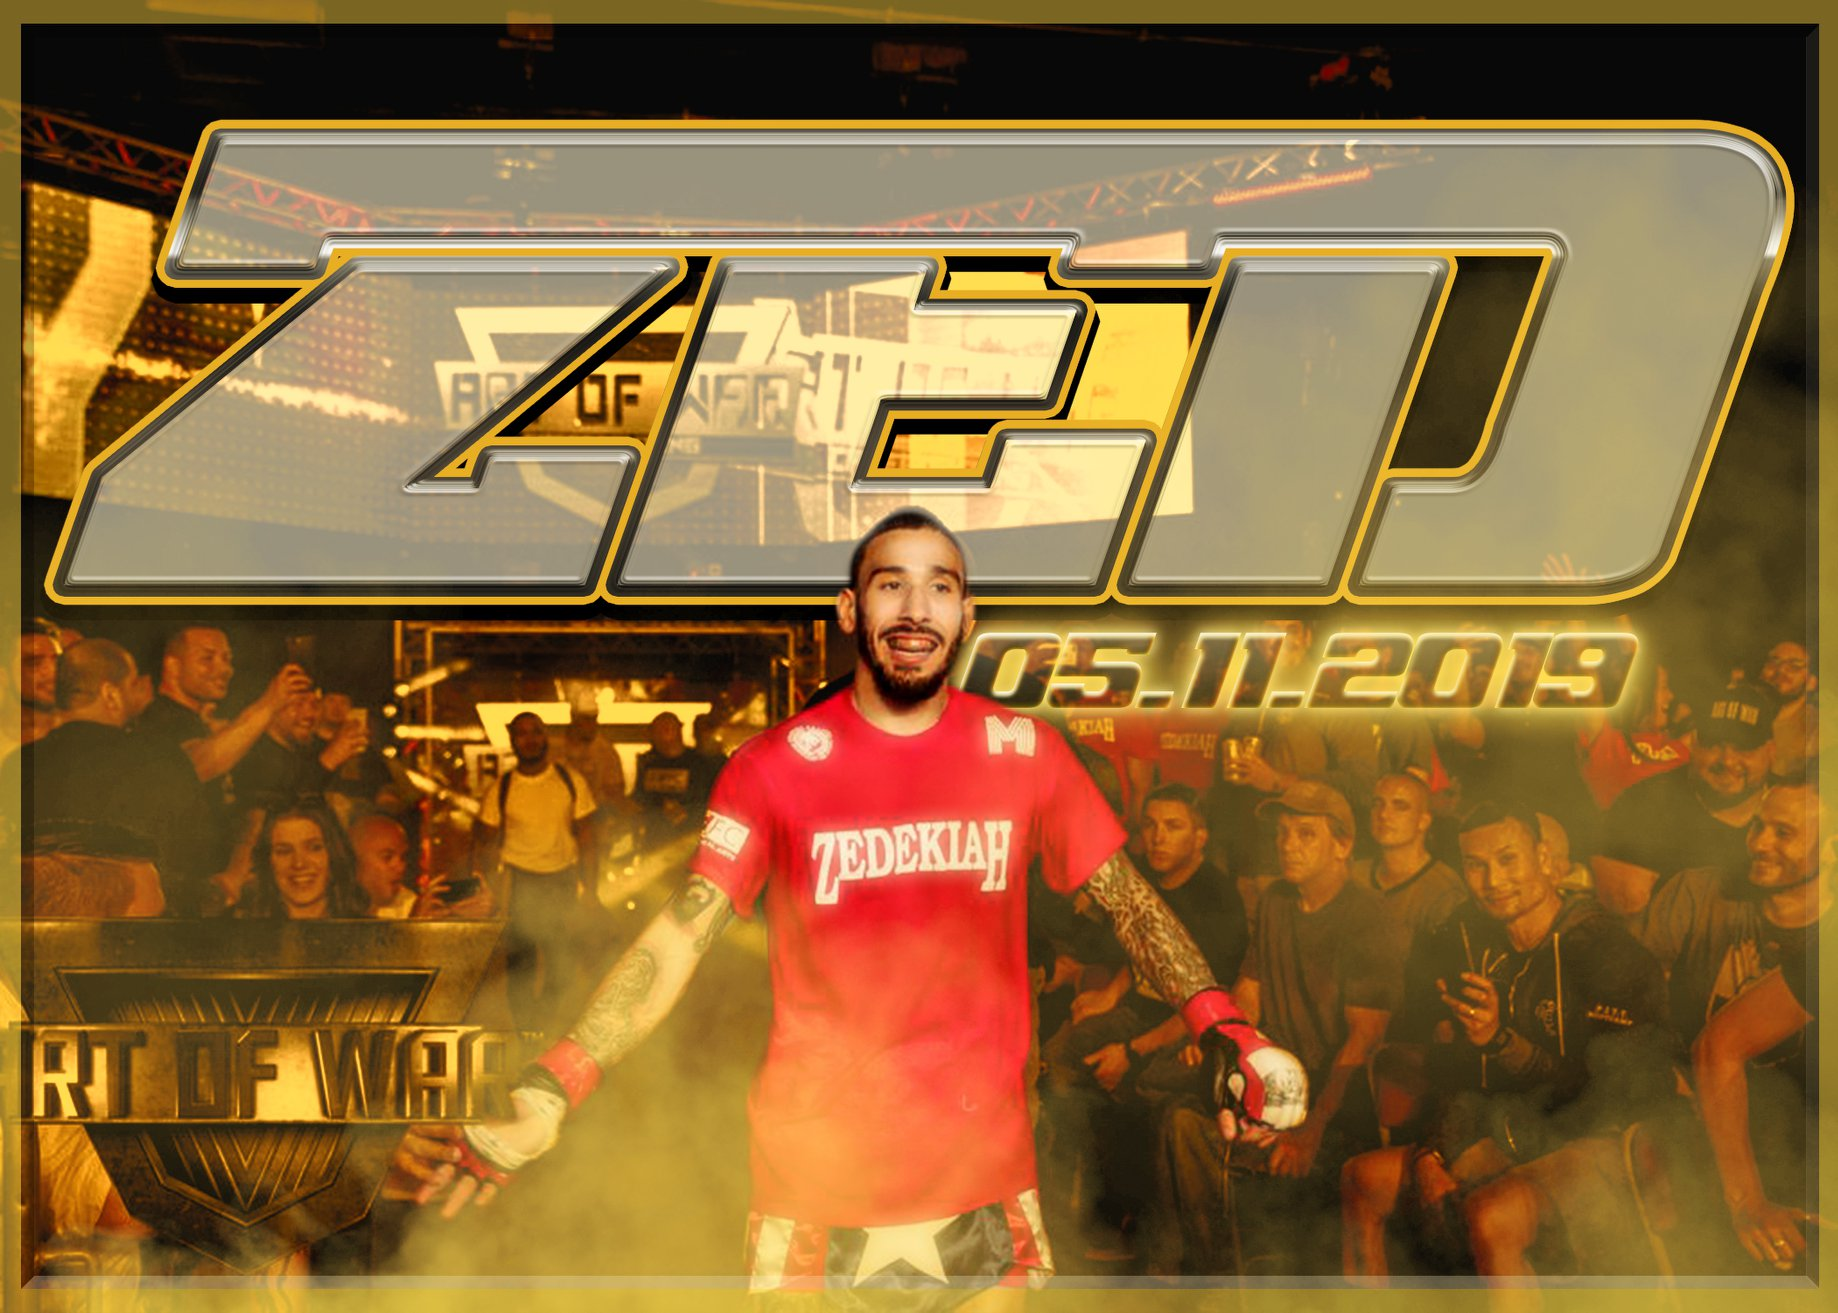 Zed Montanez remains humble, ready for more work at Art of War 12